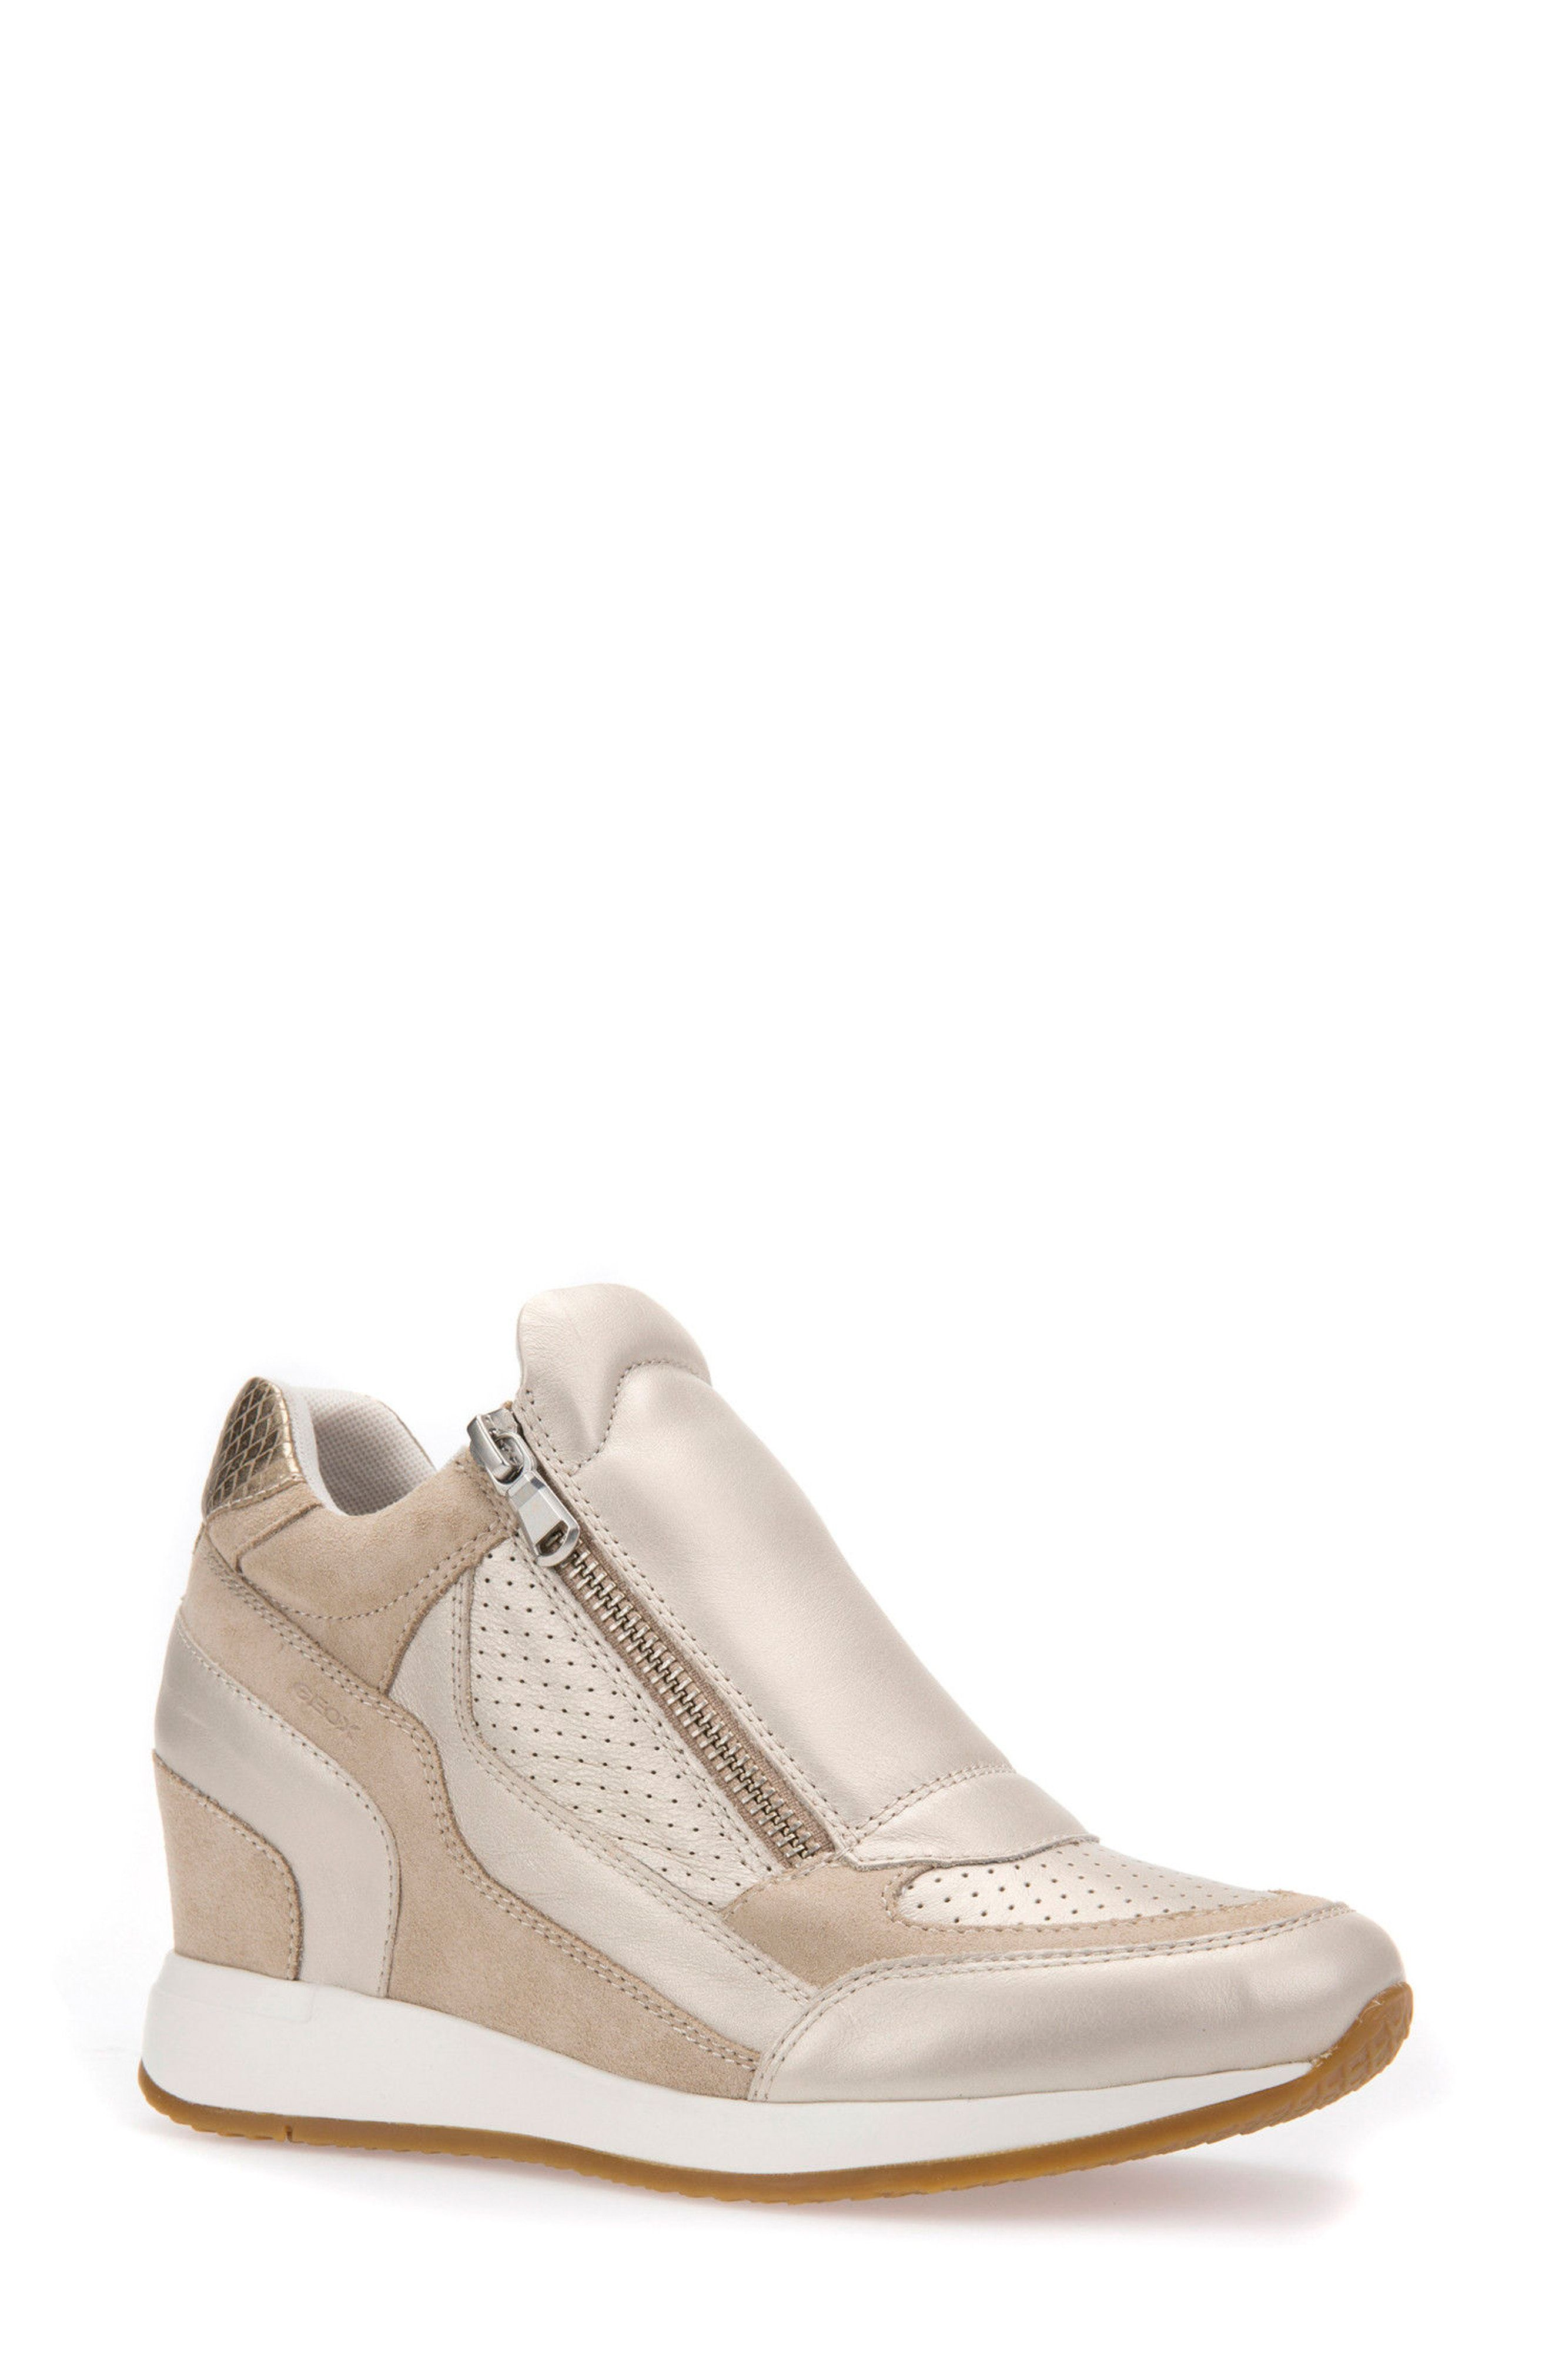 b08ffa7dcac Shop GEOX NYDAME WEDGE SNEAKER, PLATINUM LEATHER, starting at $130. Similar  ones also available. On SALE now!